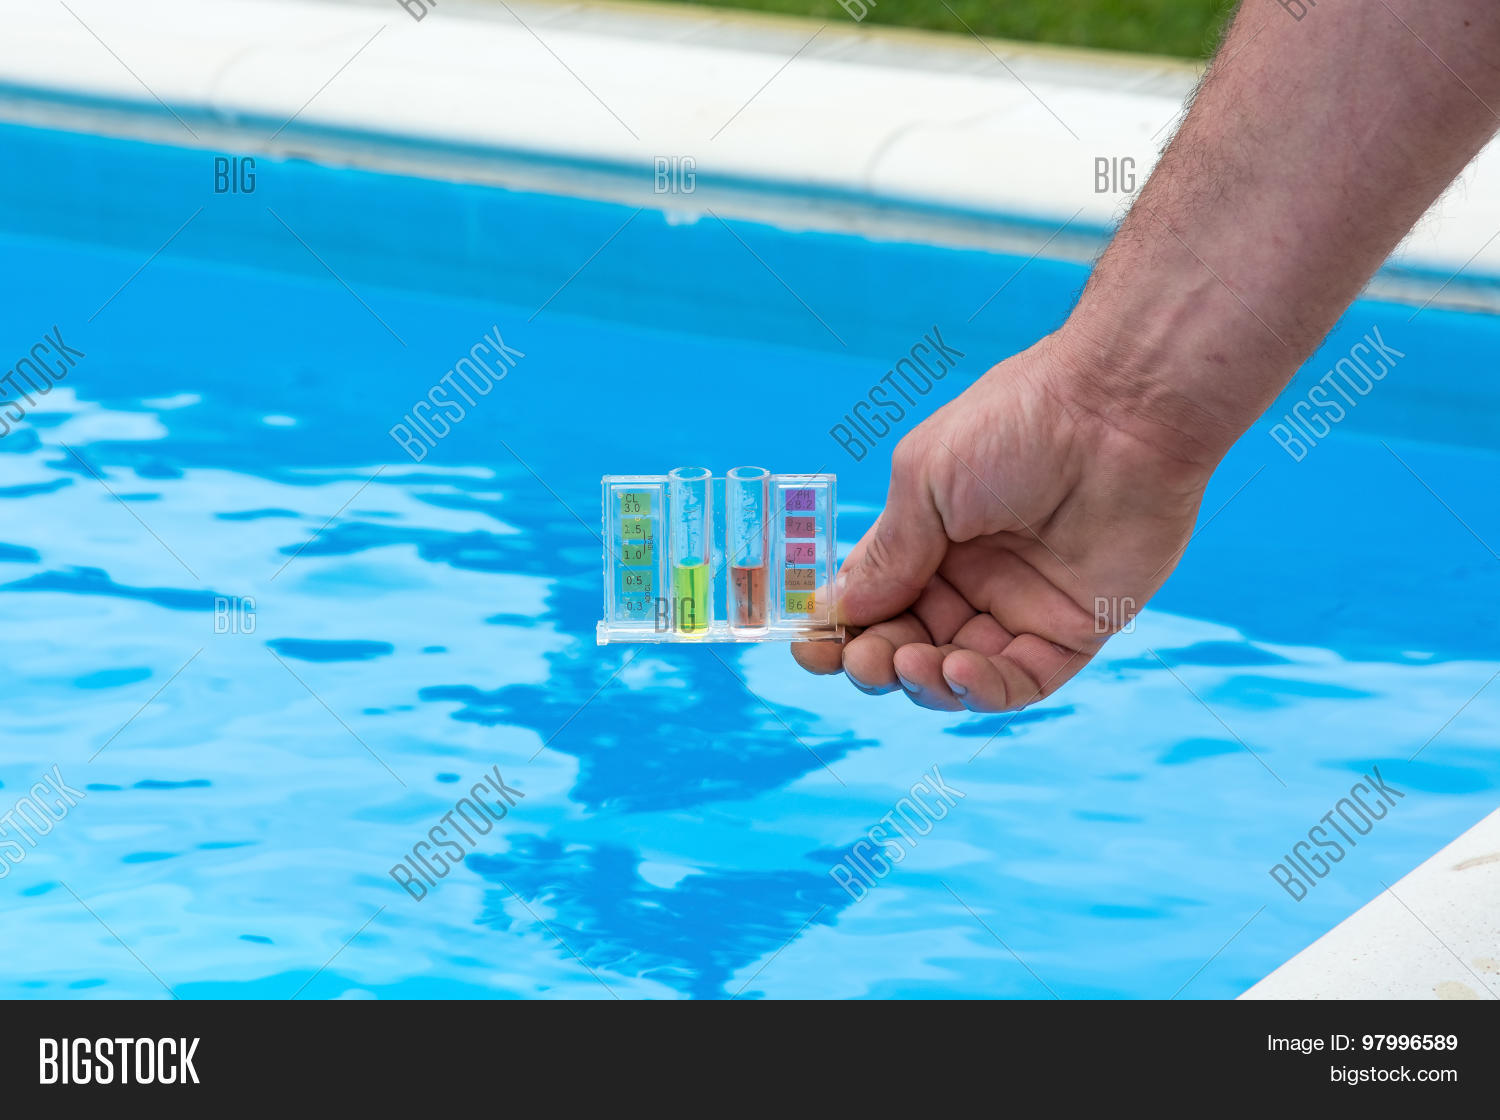 pool water testing image photo bigstock. Black Bedroom Furniture Sets. Home Design Ideas